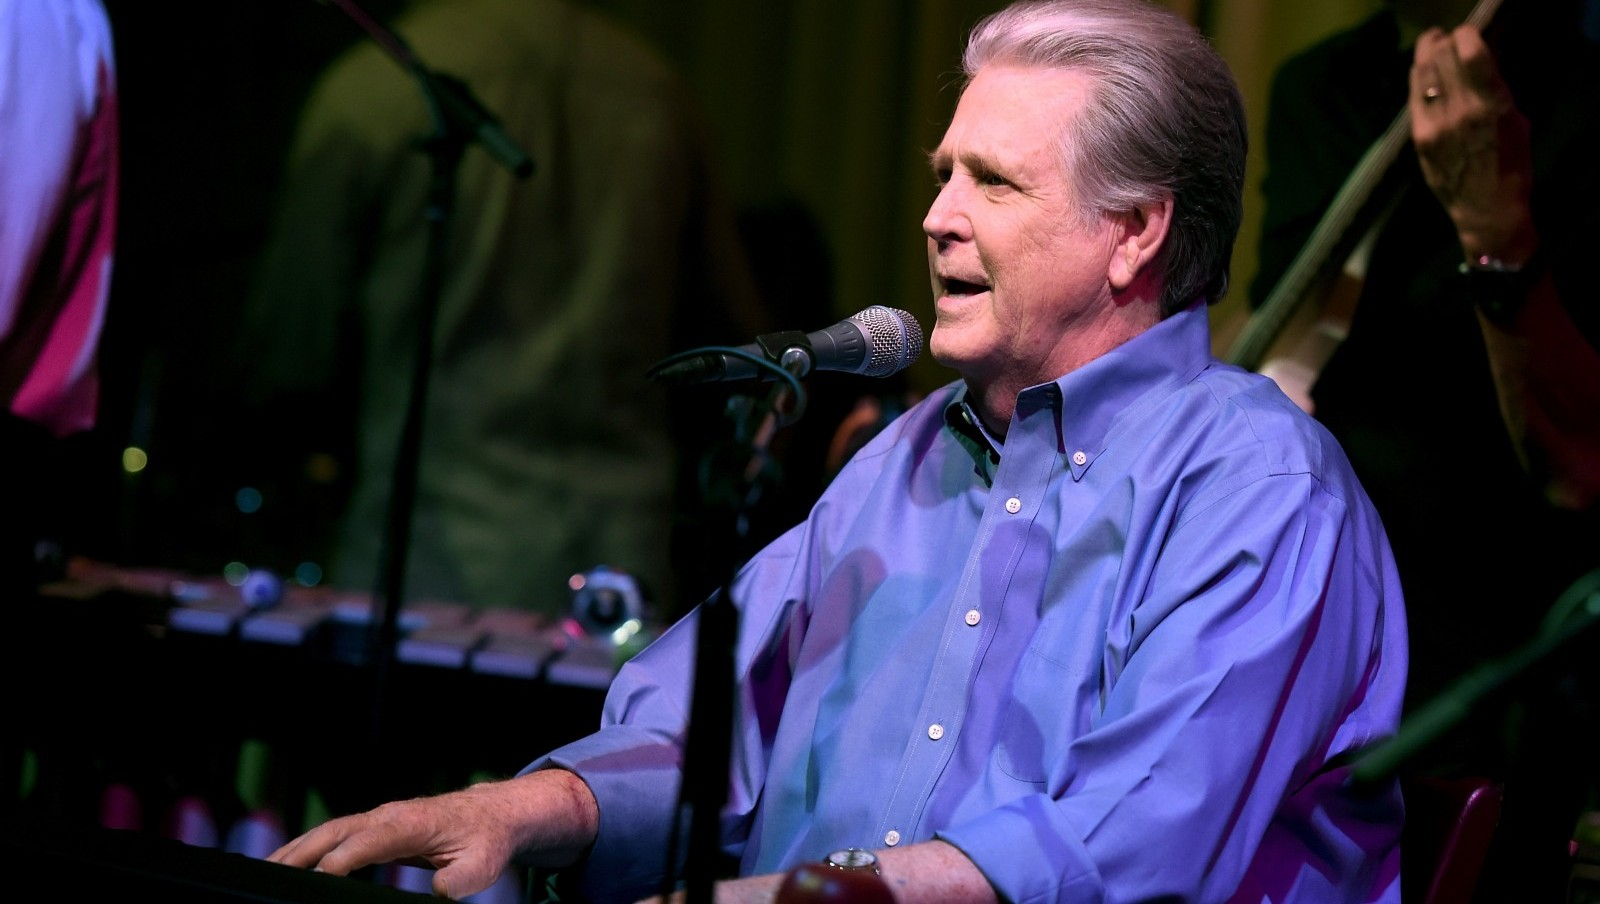 Brian Wilson will perform at the University at Buffalo Center for the Arts on Sept. 28. (Getty Images)